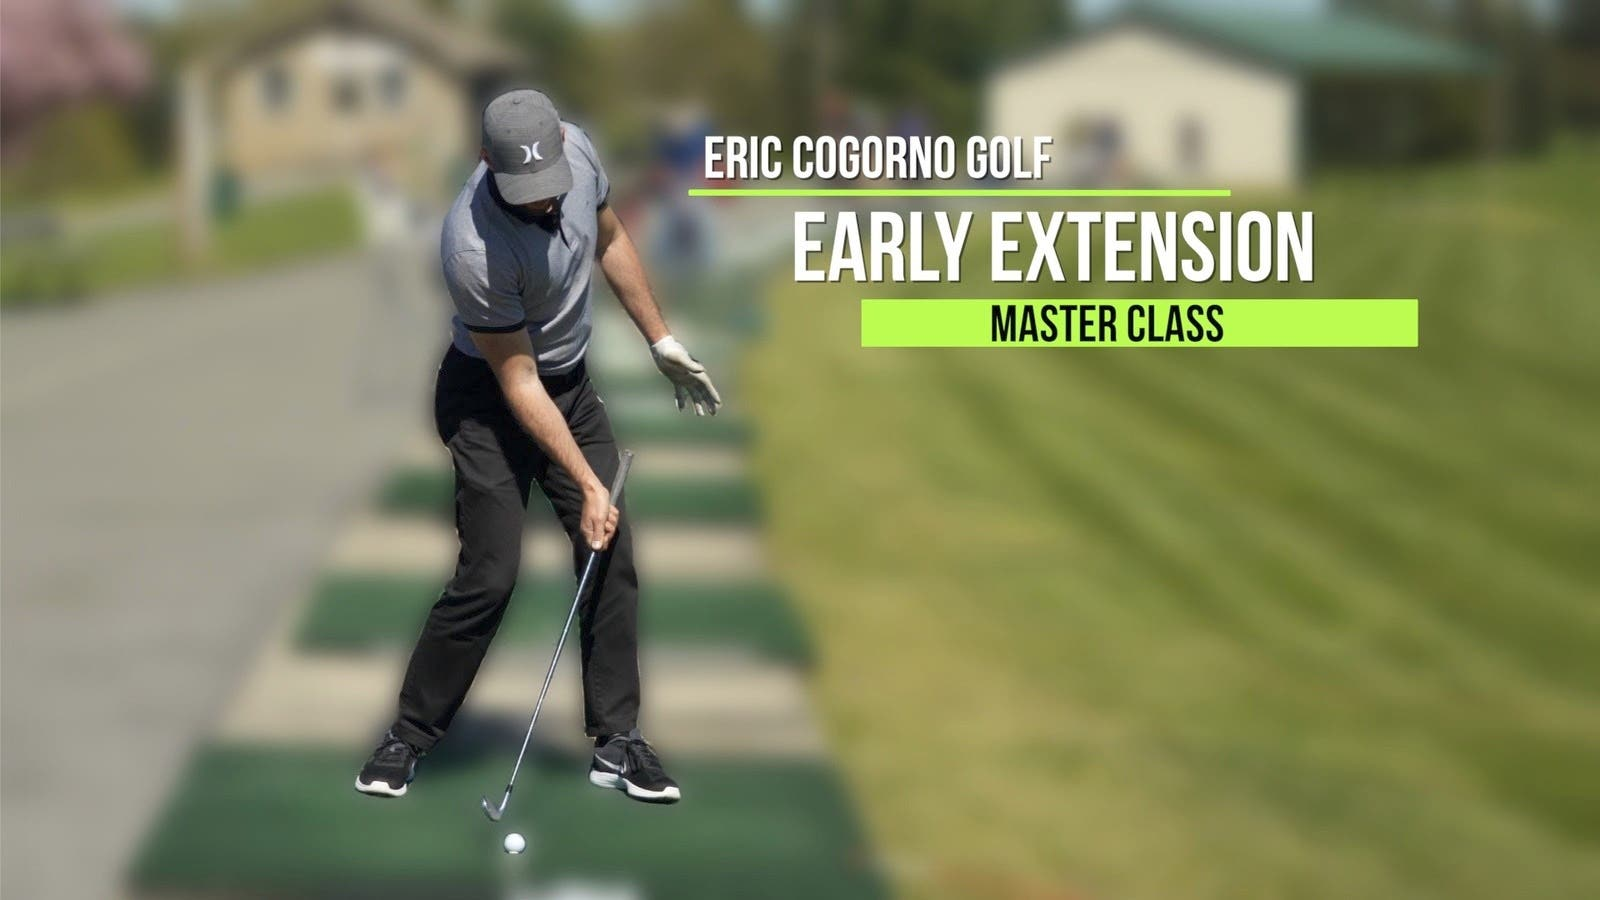 Early Extension Master Class